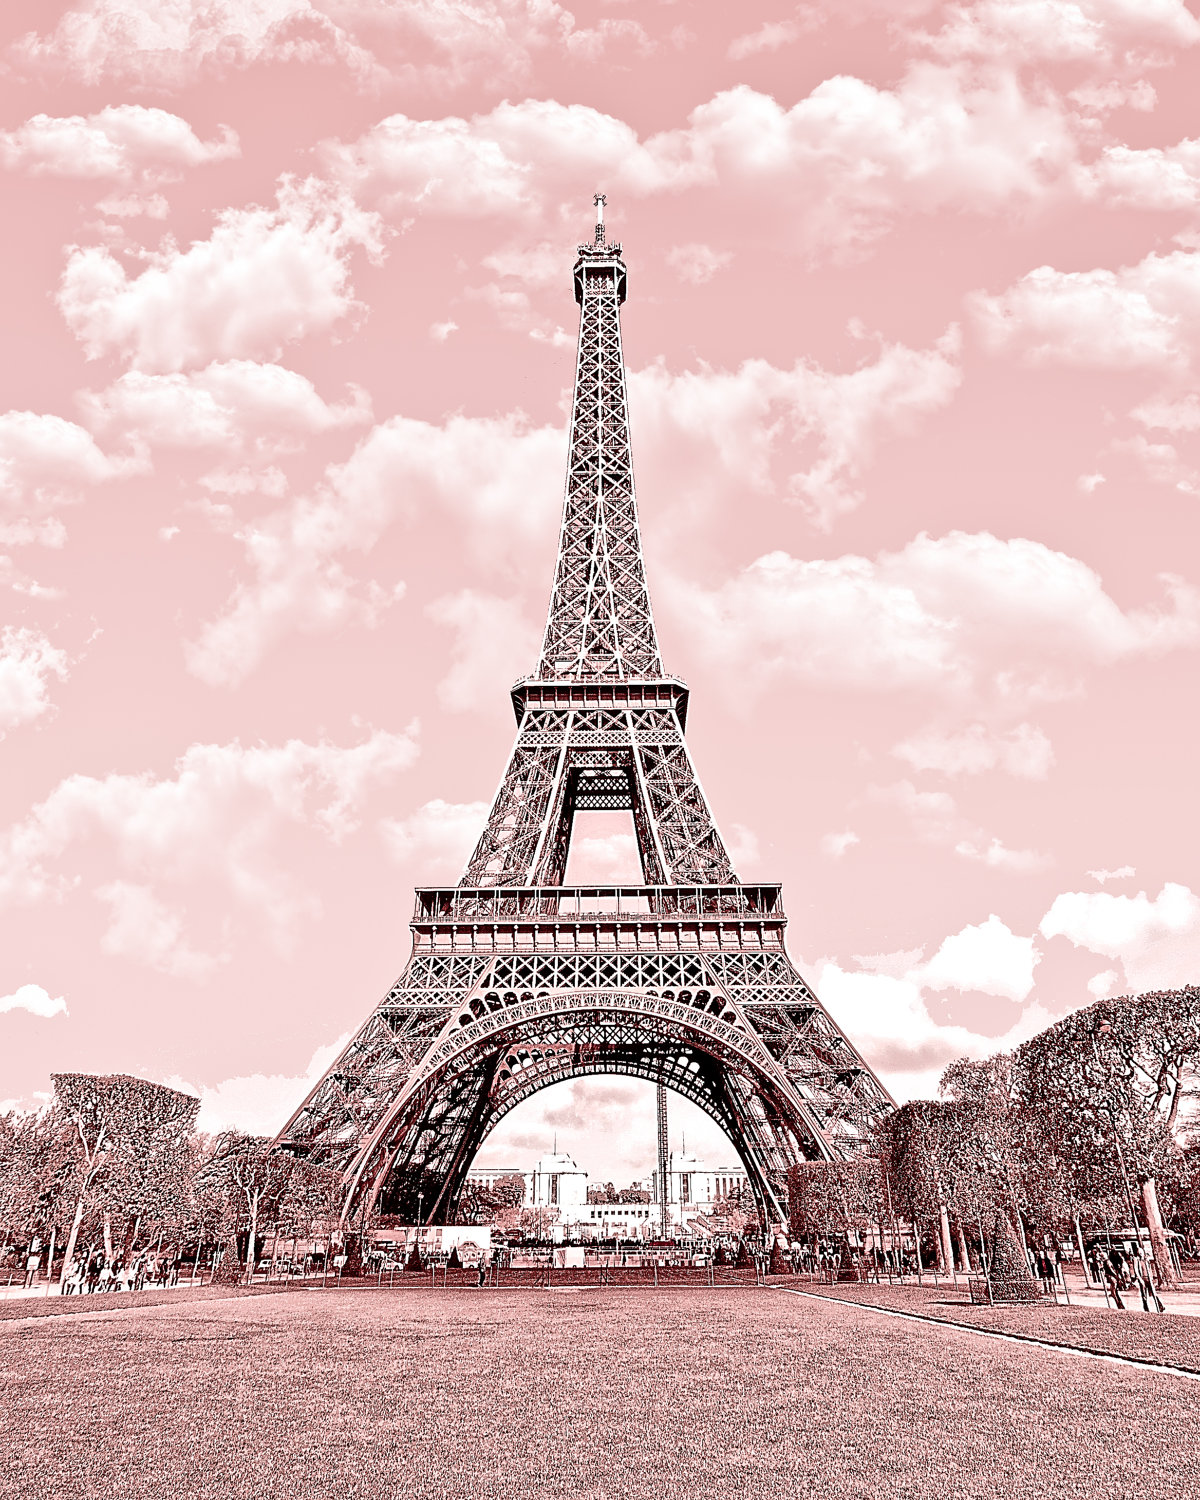 Group of Eiffel Tower In Pink